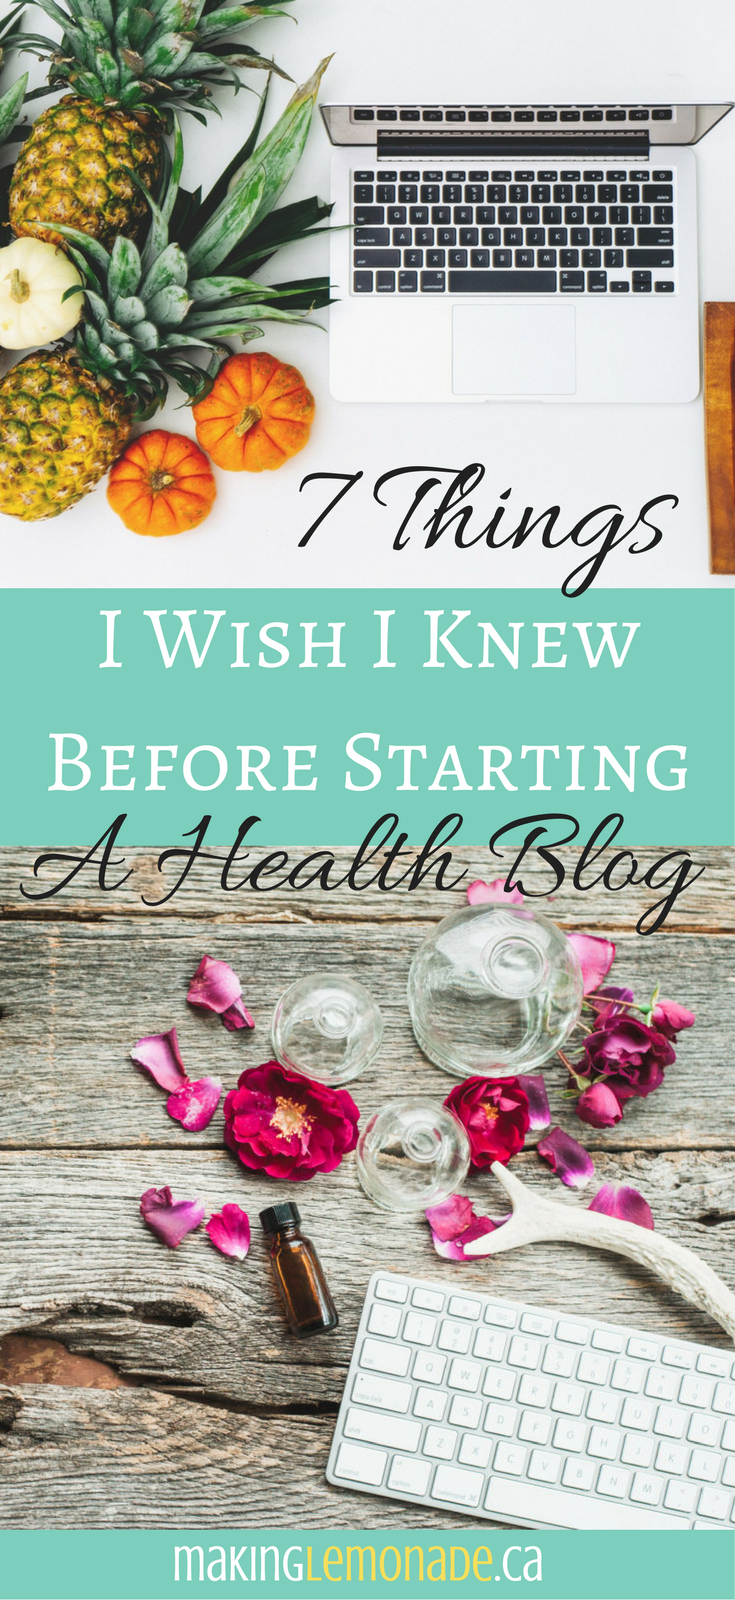 7 things I wish I knew before starting a health blog